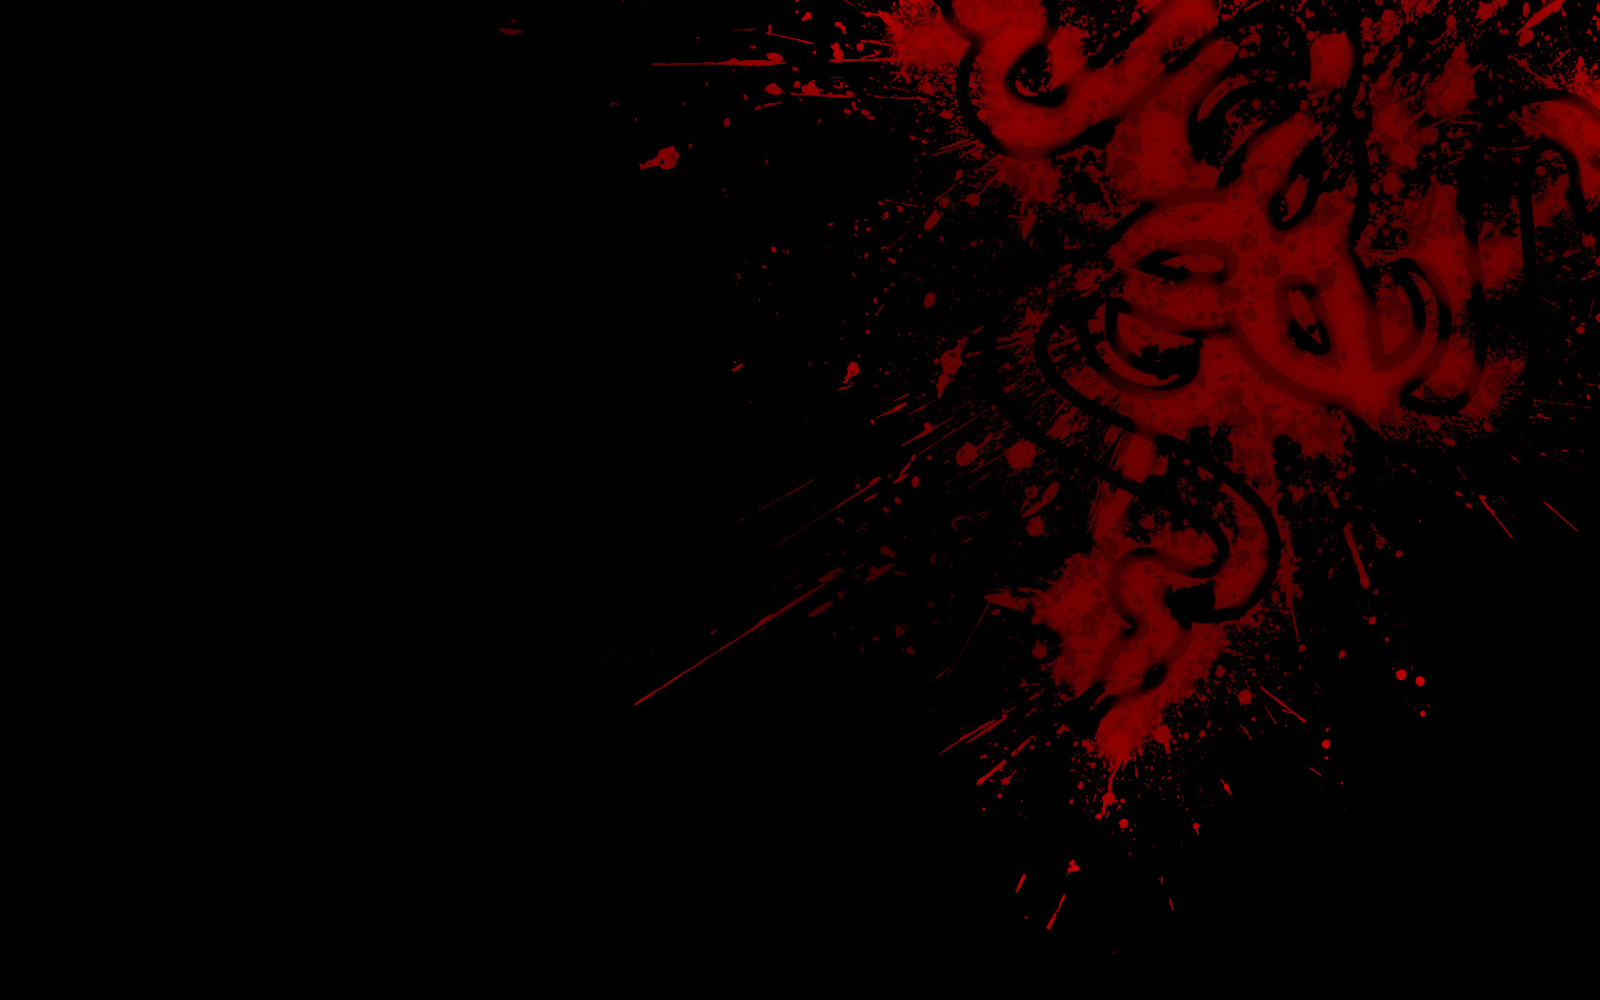 Bloody Wallpaper HD - WallpaperSafari